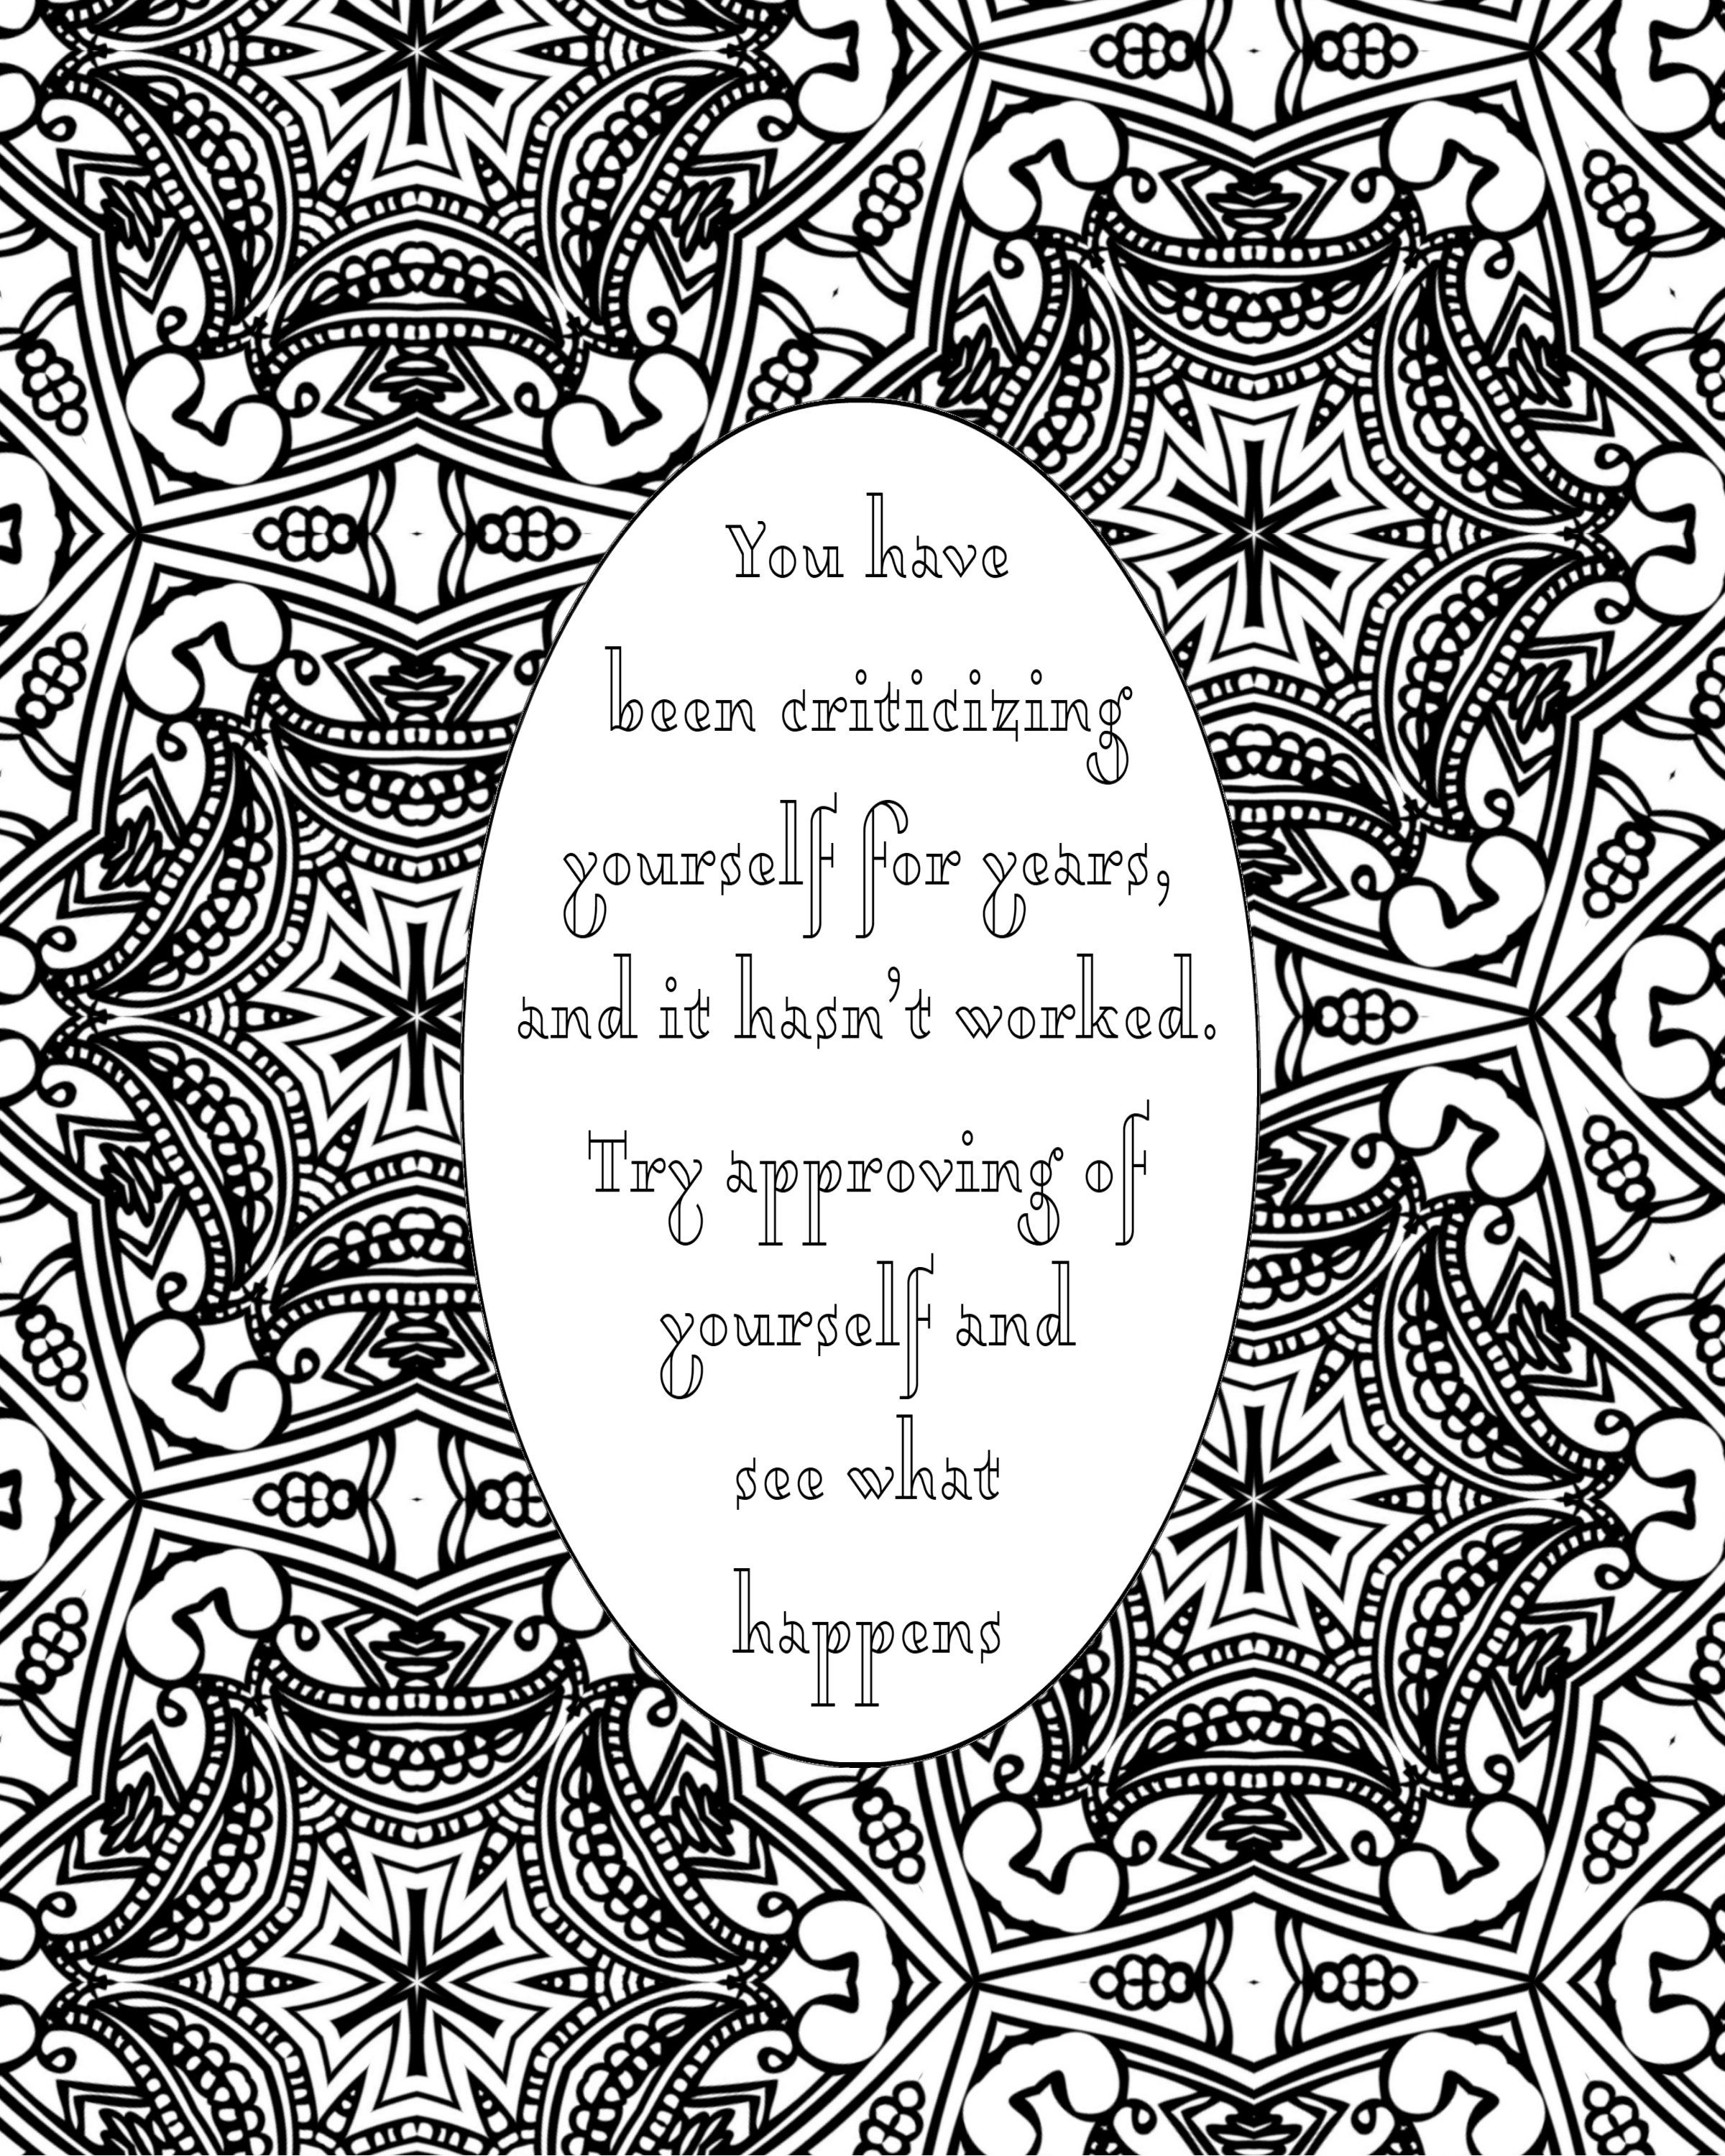 5 Self Love Worth Printable Coloring Quotes Pages Pdf With Images